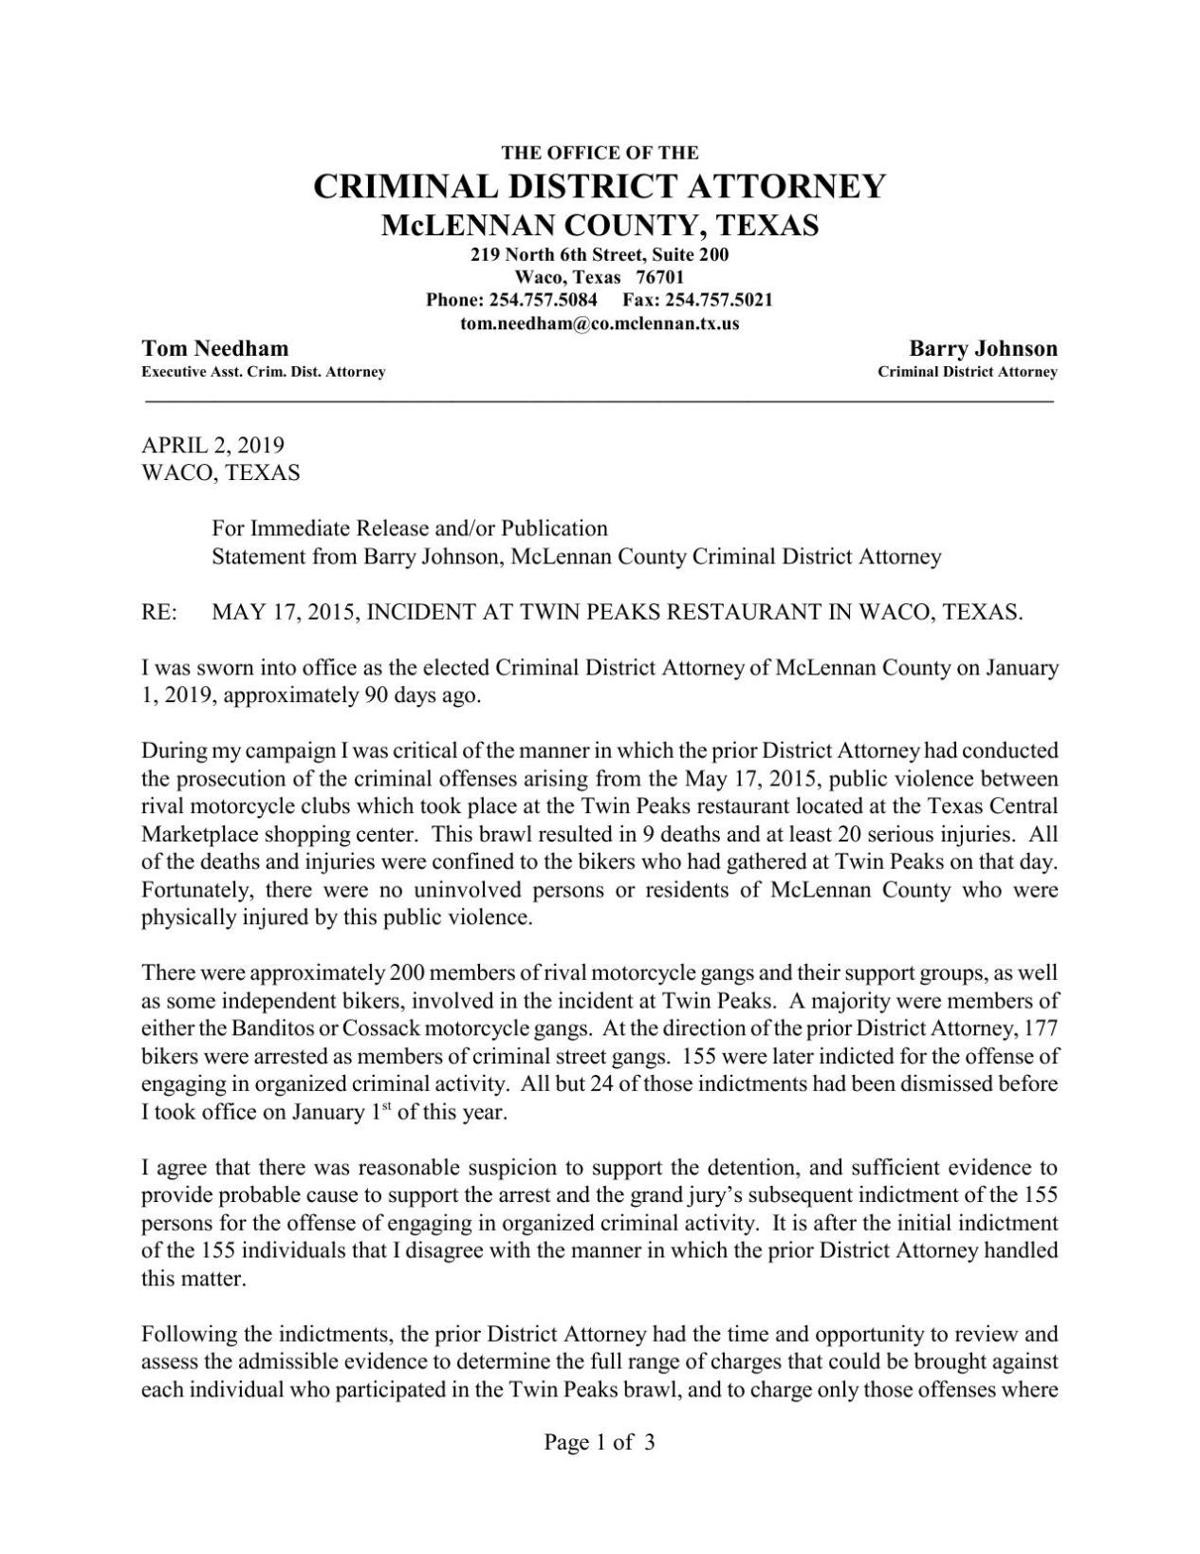 McLennan County DA statement on Twin Peaks cases